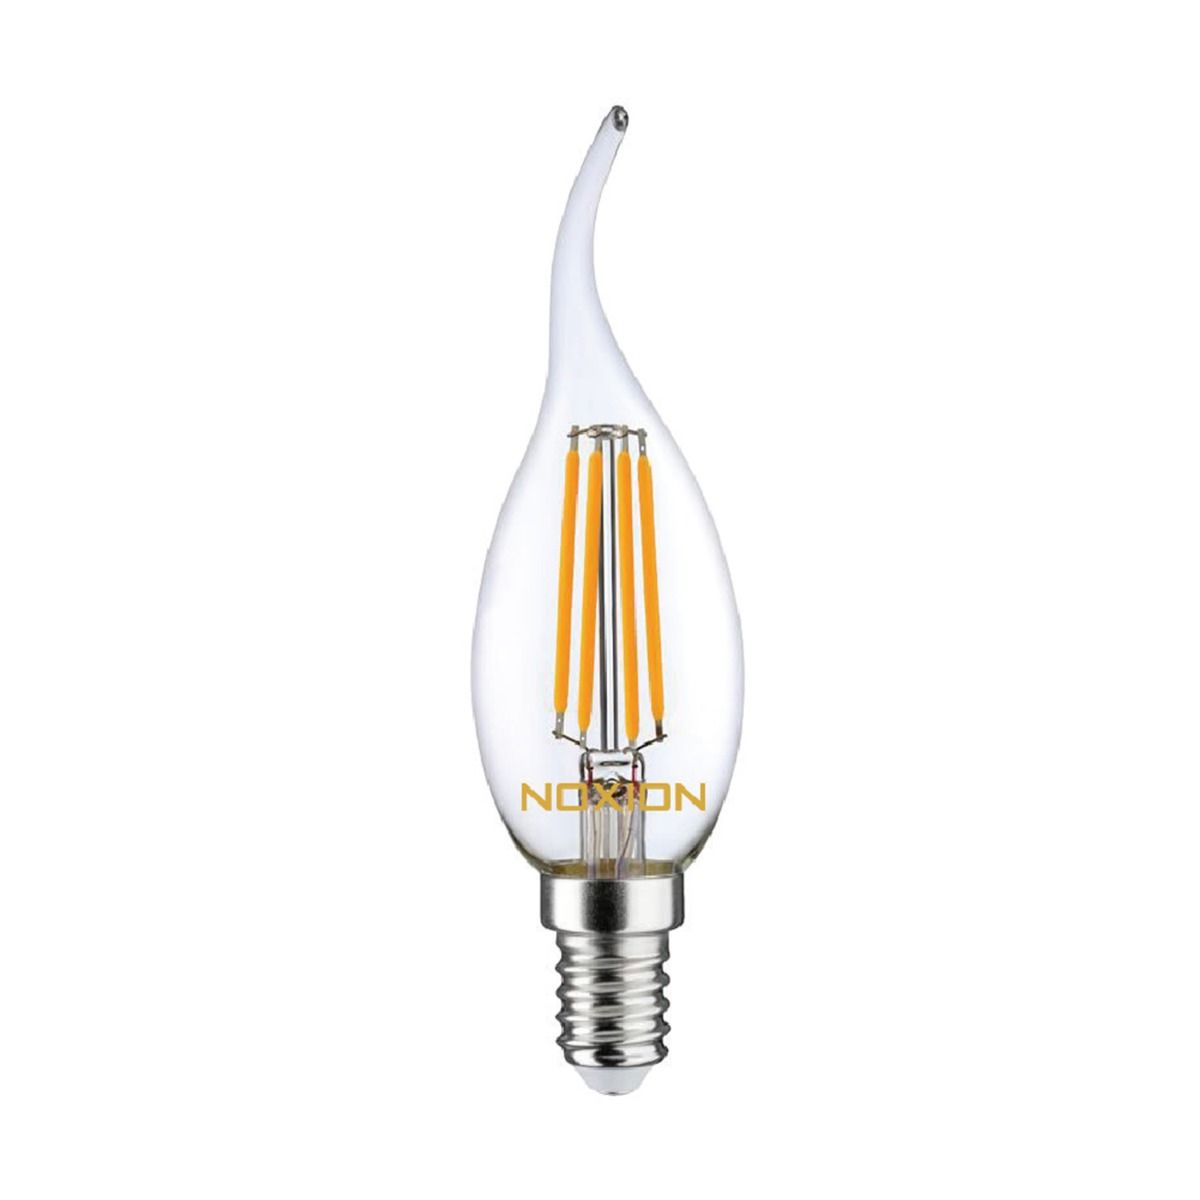 Noxion Lucent Filament LED Candle 4.5W 827 BA35 E14 Clear | Dimmable - Extra Warm White - Replaces 40W